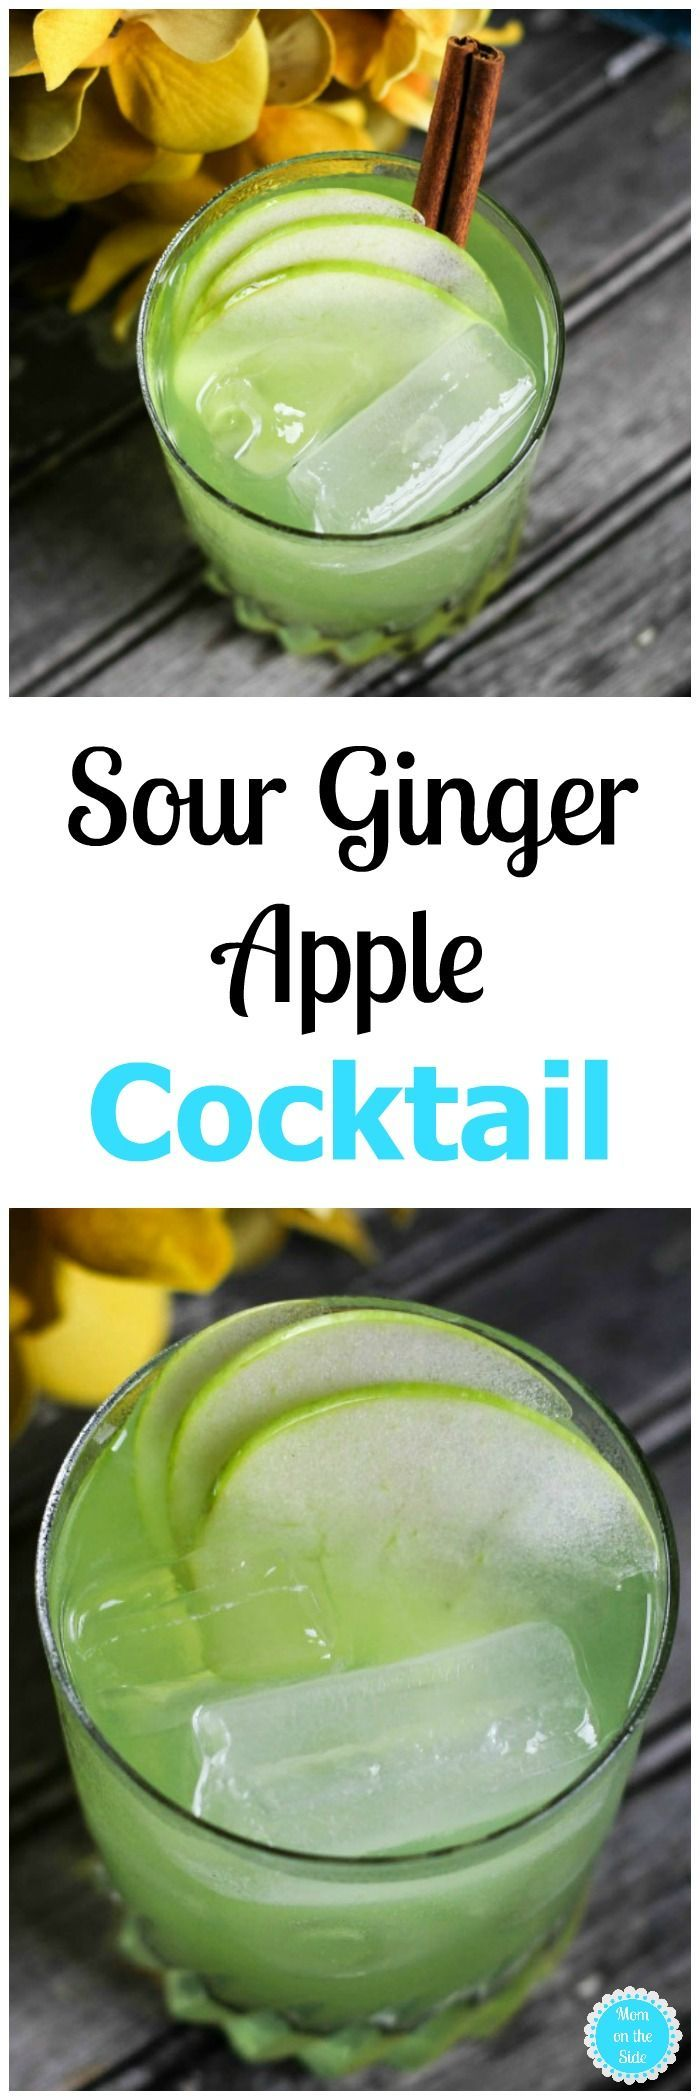 This Sour Ginger Apple Cocktail Recipe is SO good and the perfect fall cocktail to serve at your harvest parties!